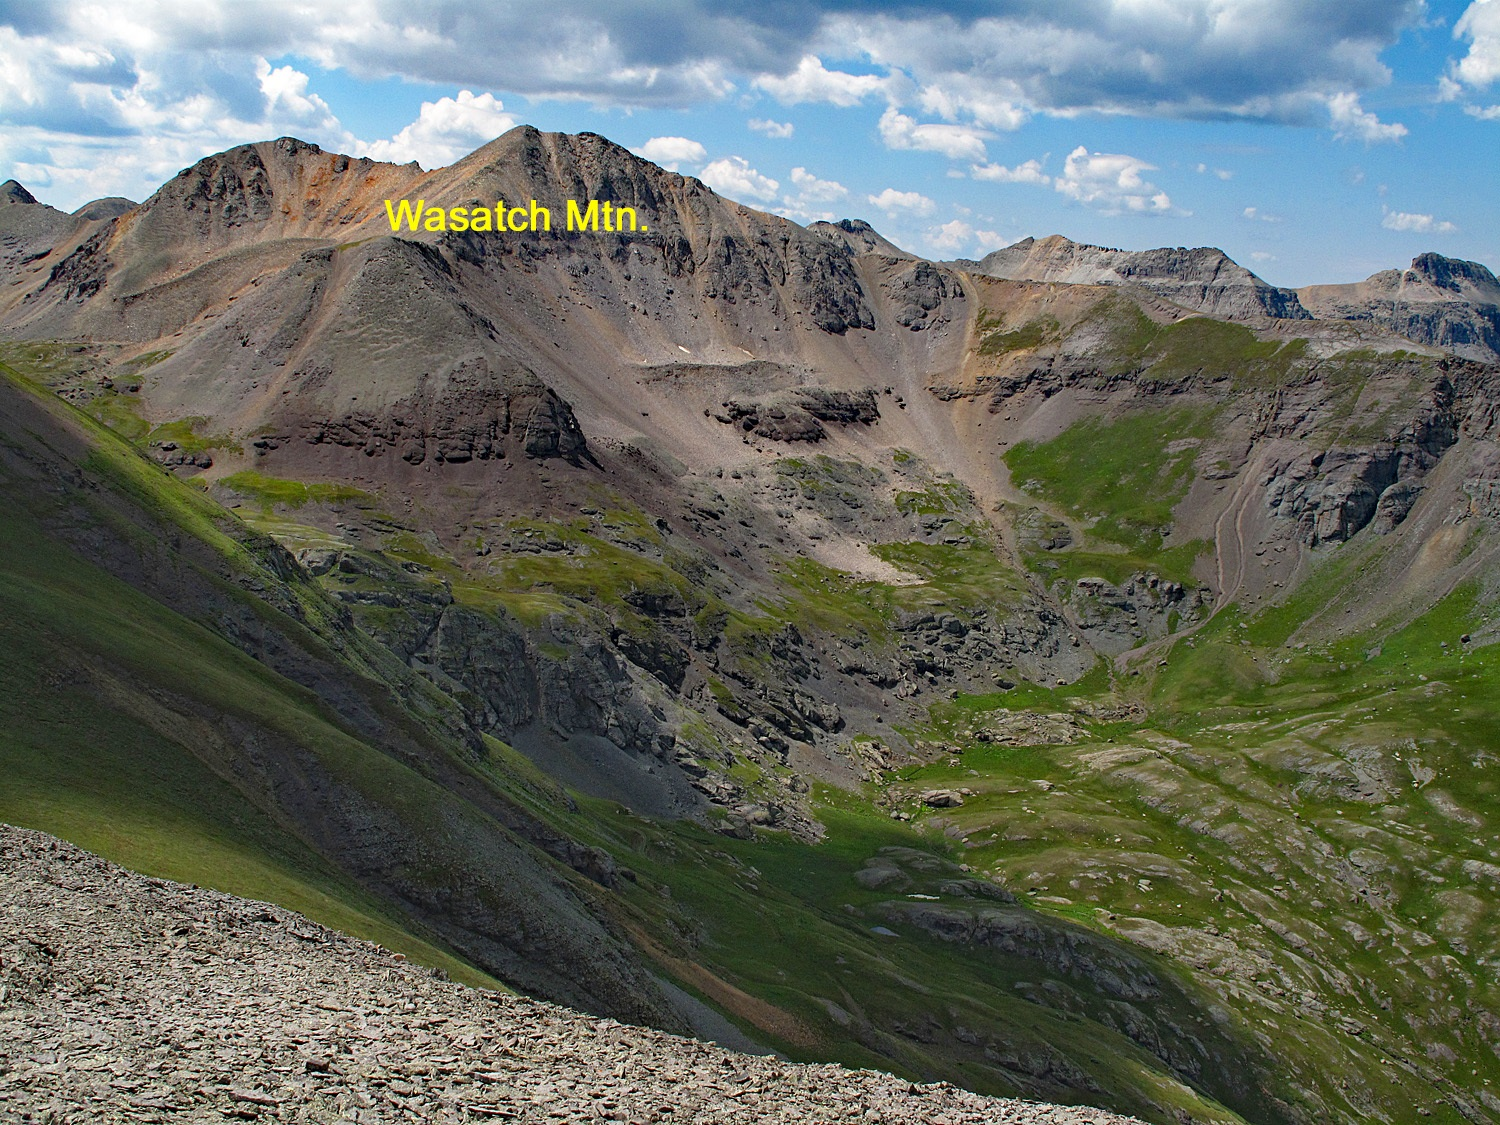 Wasatch Mountain - 13,555